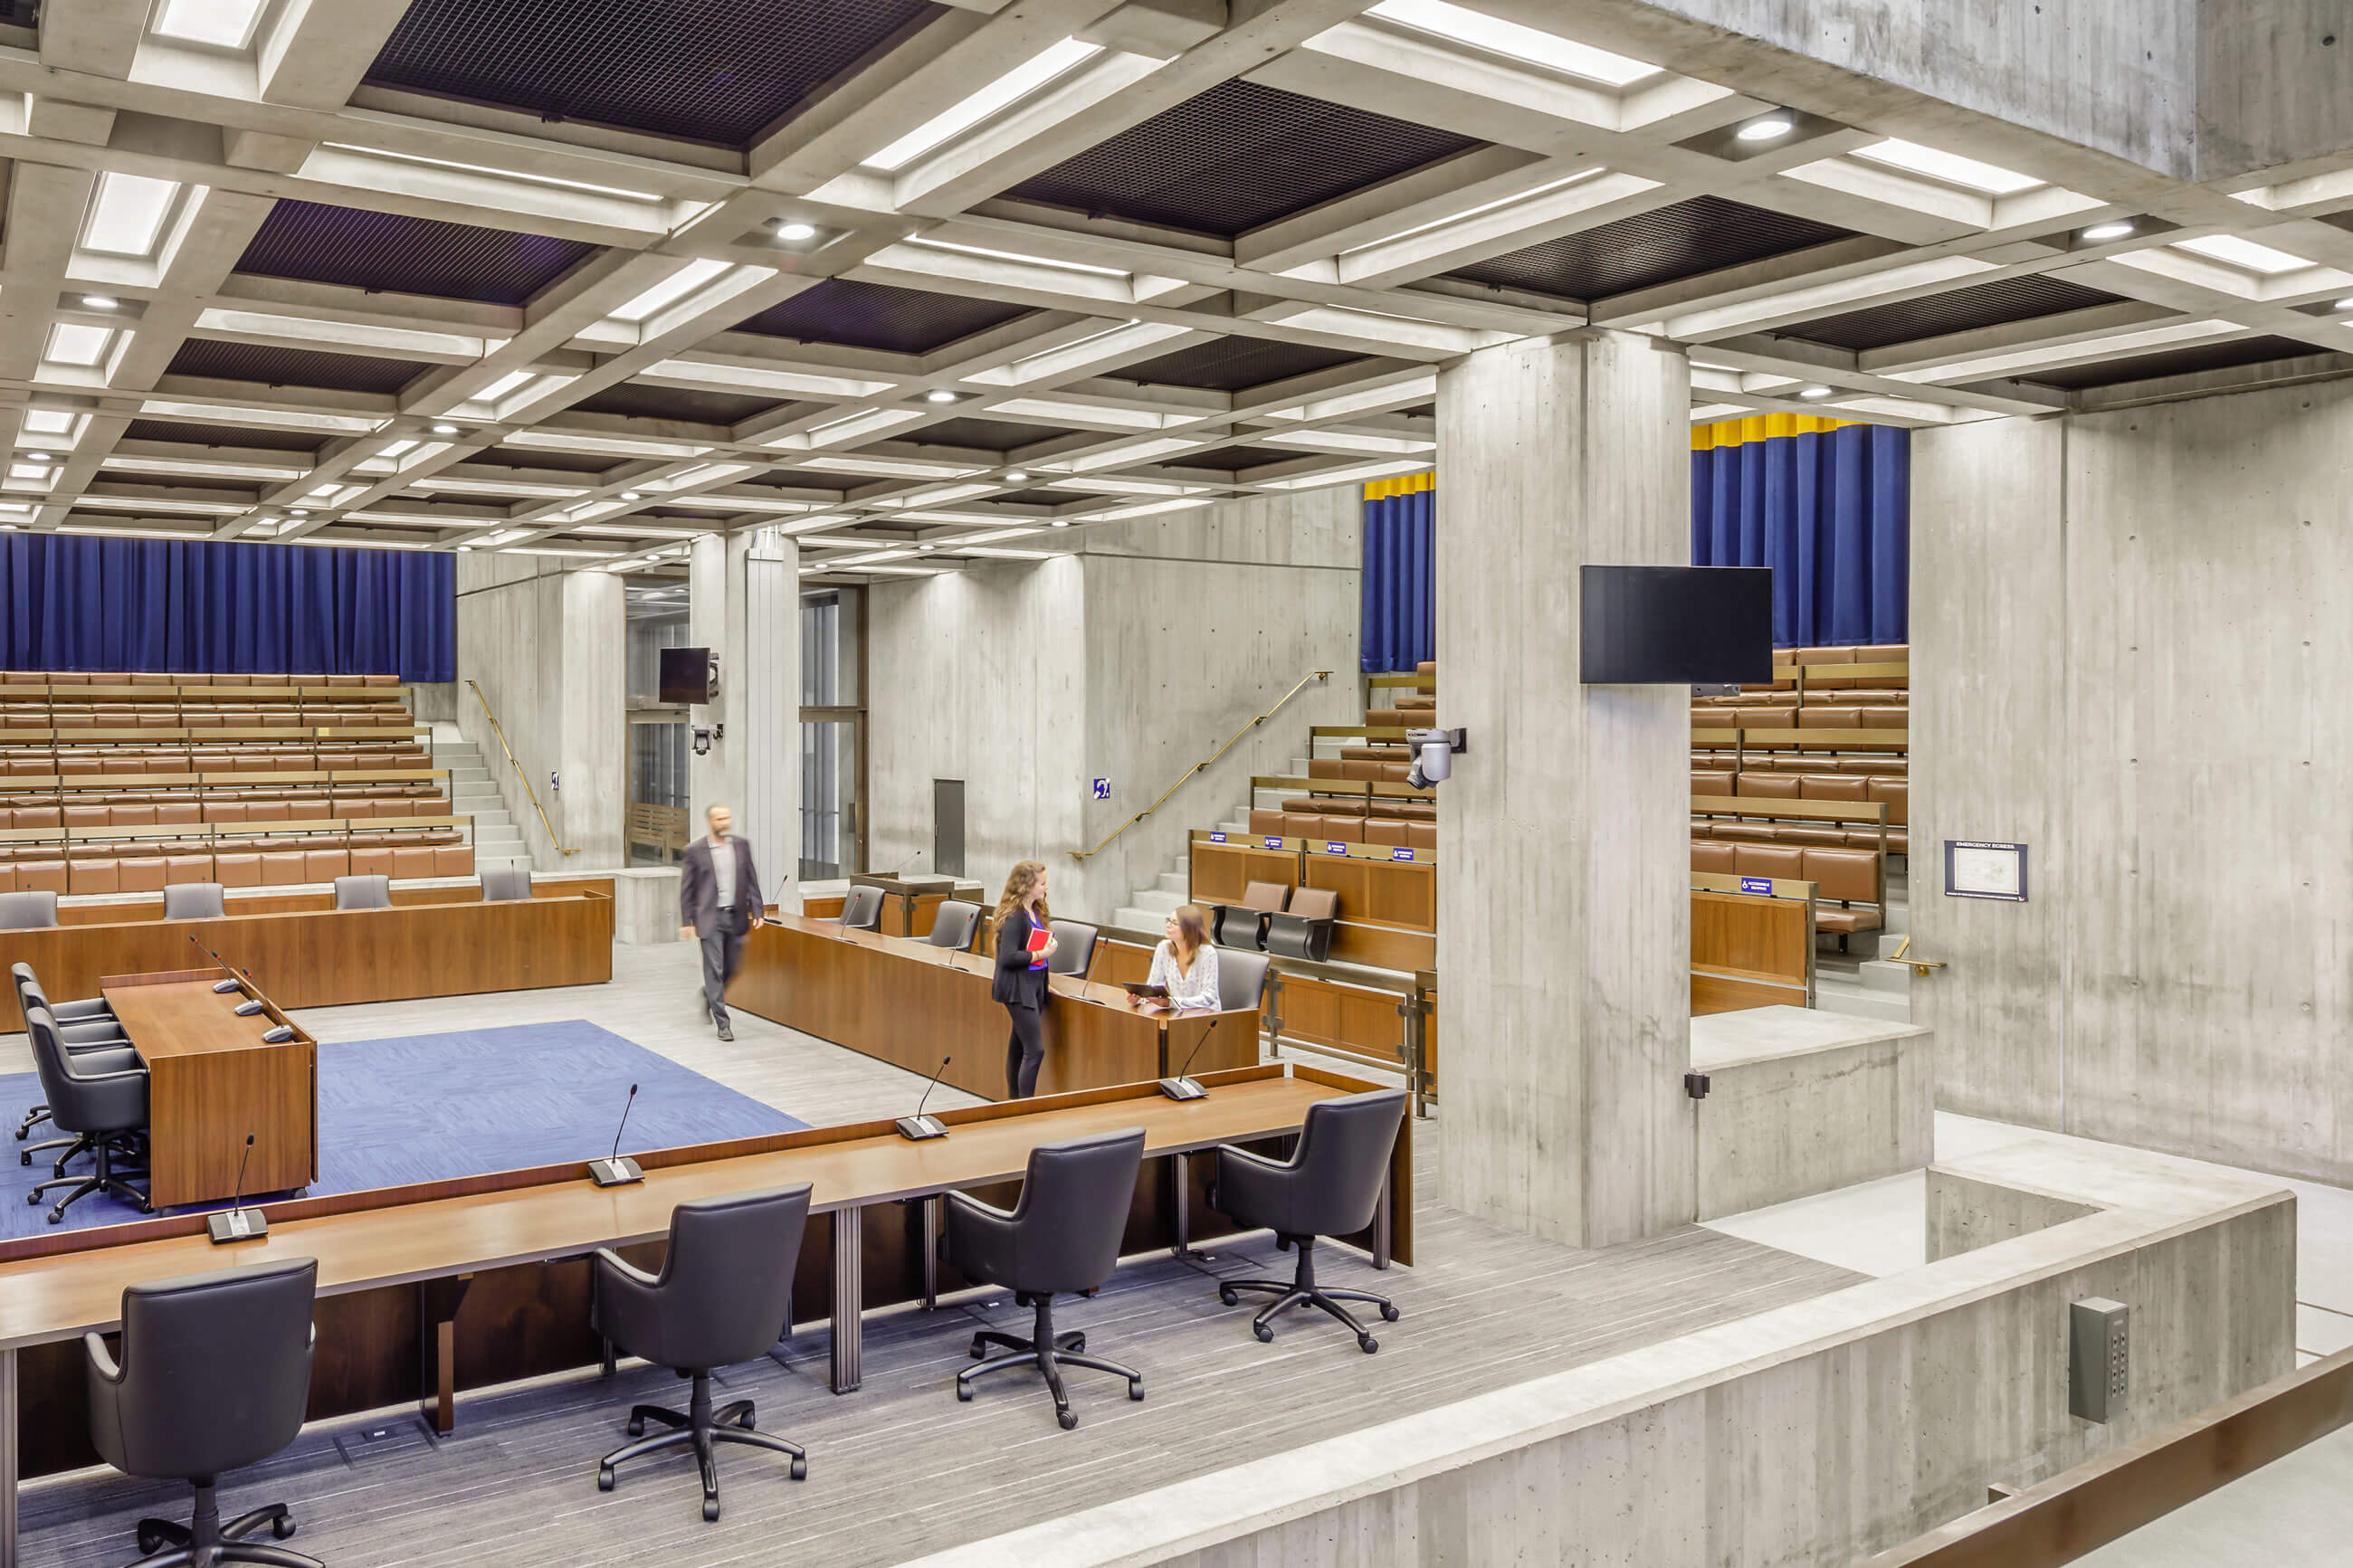 Interior view of Boston City Hall Council Chambers, showing clean, crisp modern finishes in this Modernist icon.